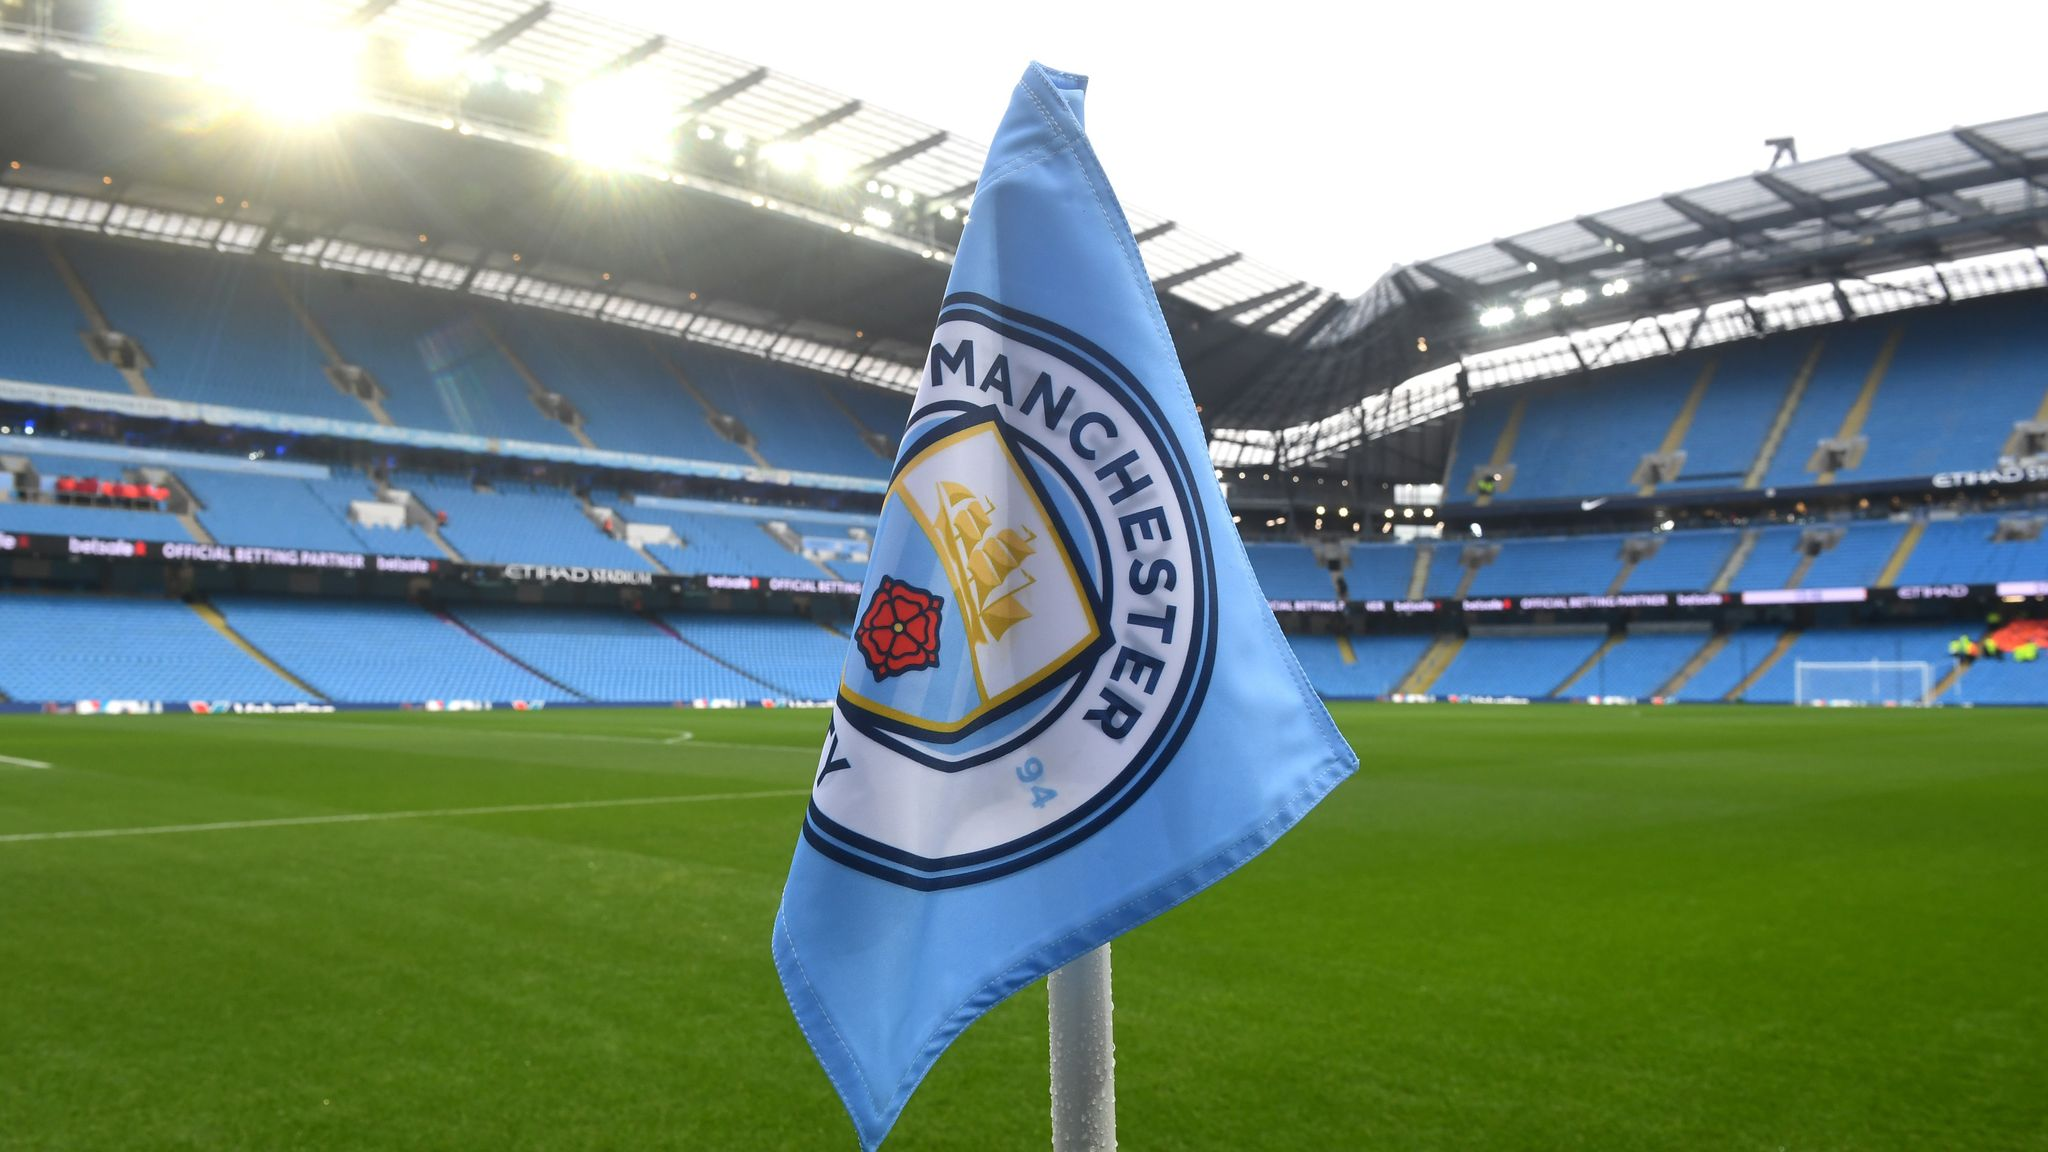 Breaking News: UEFA Lifts Manchester City's Ban, Fine Maintained But Reduced